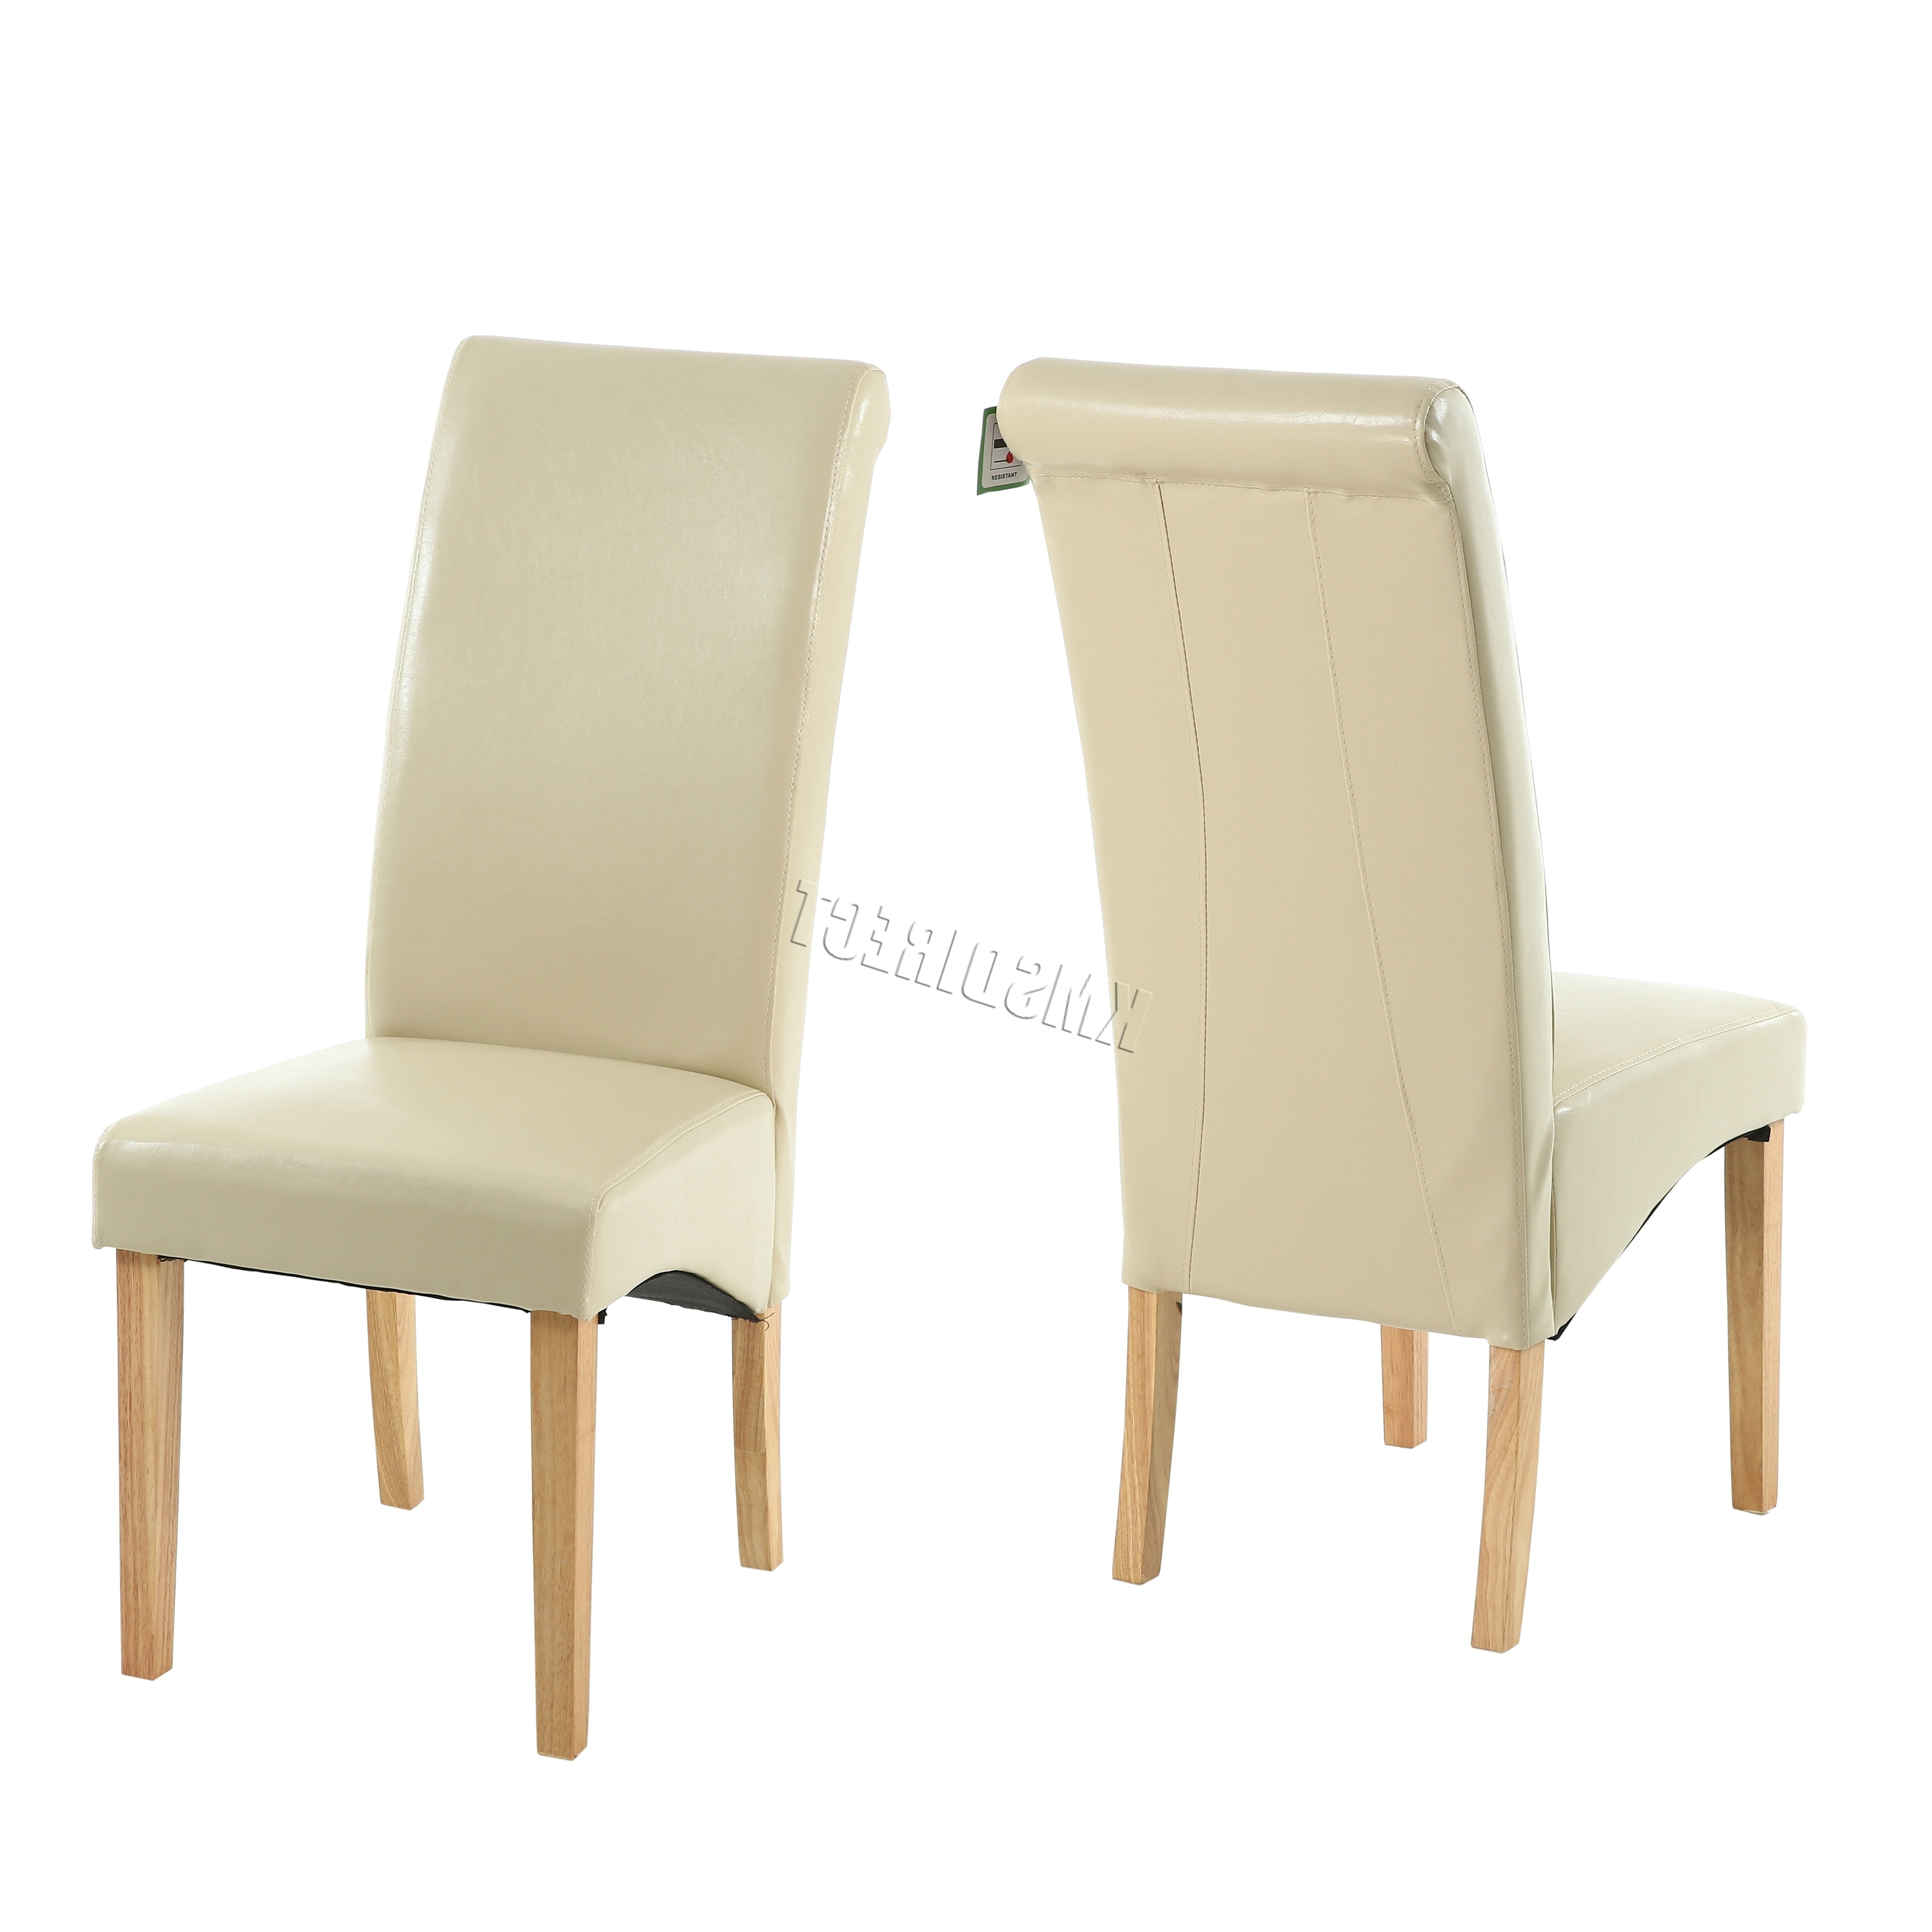 Best And Newest New Cream Faux Leather Dining Chairs Roll Top Scroll High Four Chair With Cream Faux Leather Dining Chairs (Gallery 11 of 25)